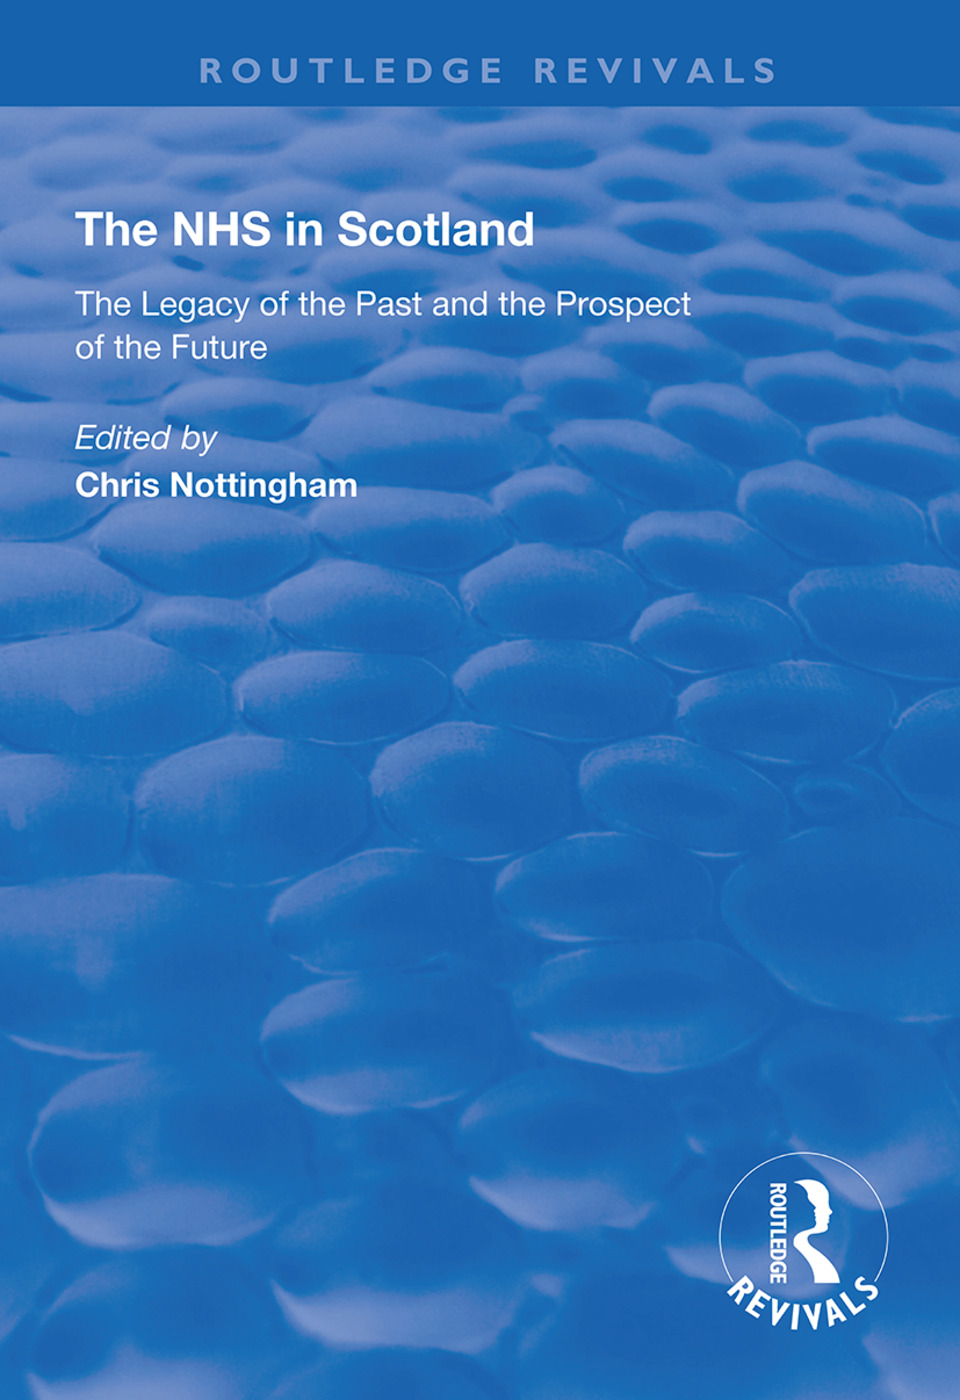 The NHS in Scotland: The Legacy of the Past and the Prospect of the Future book cover